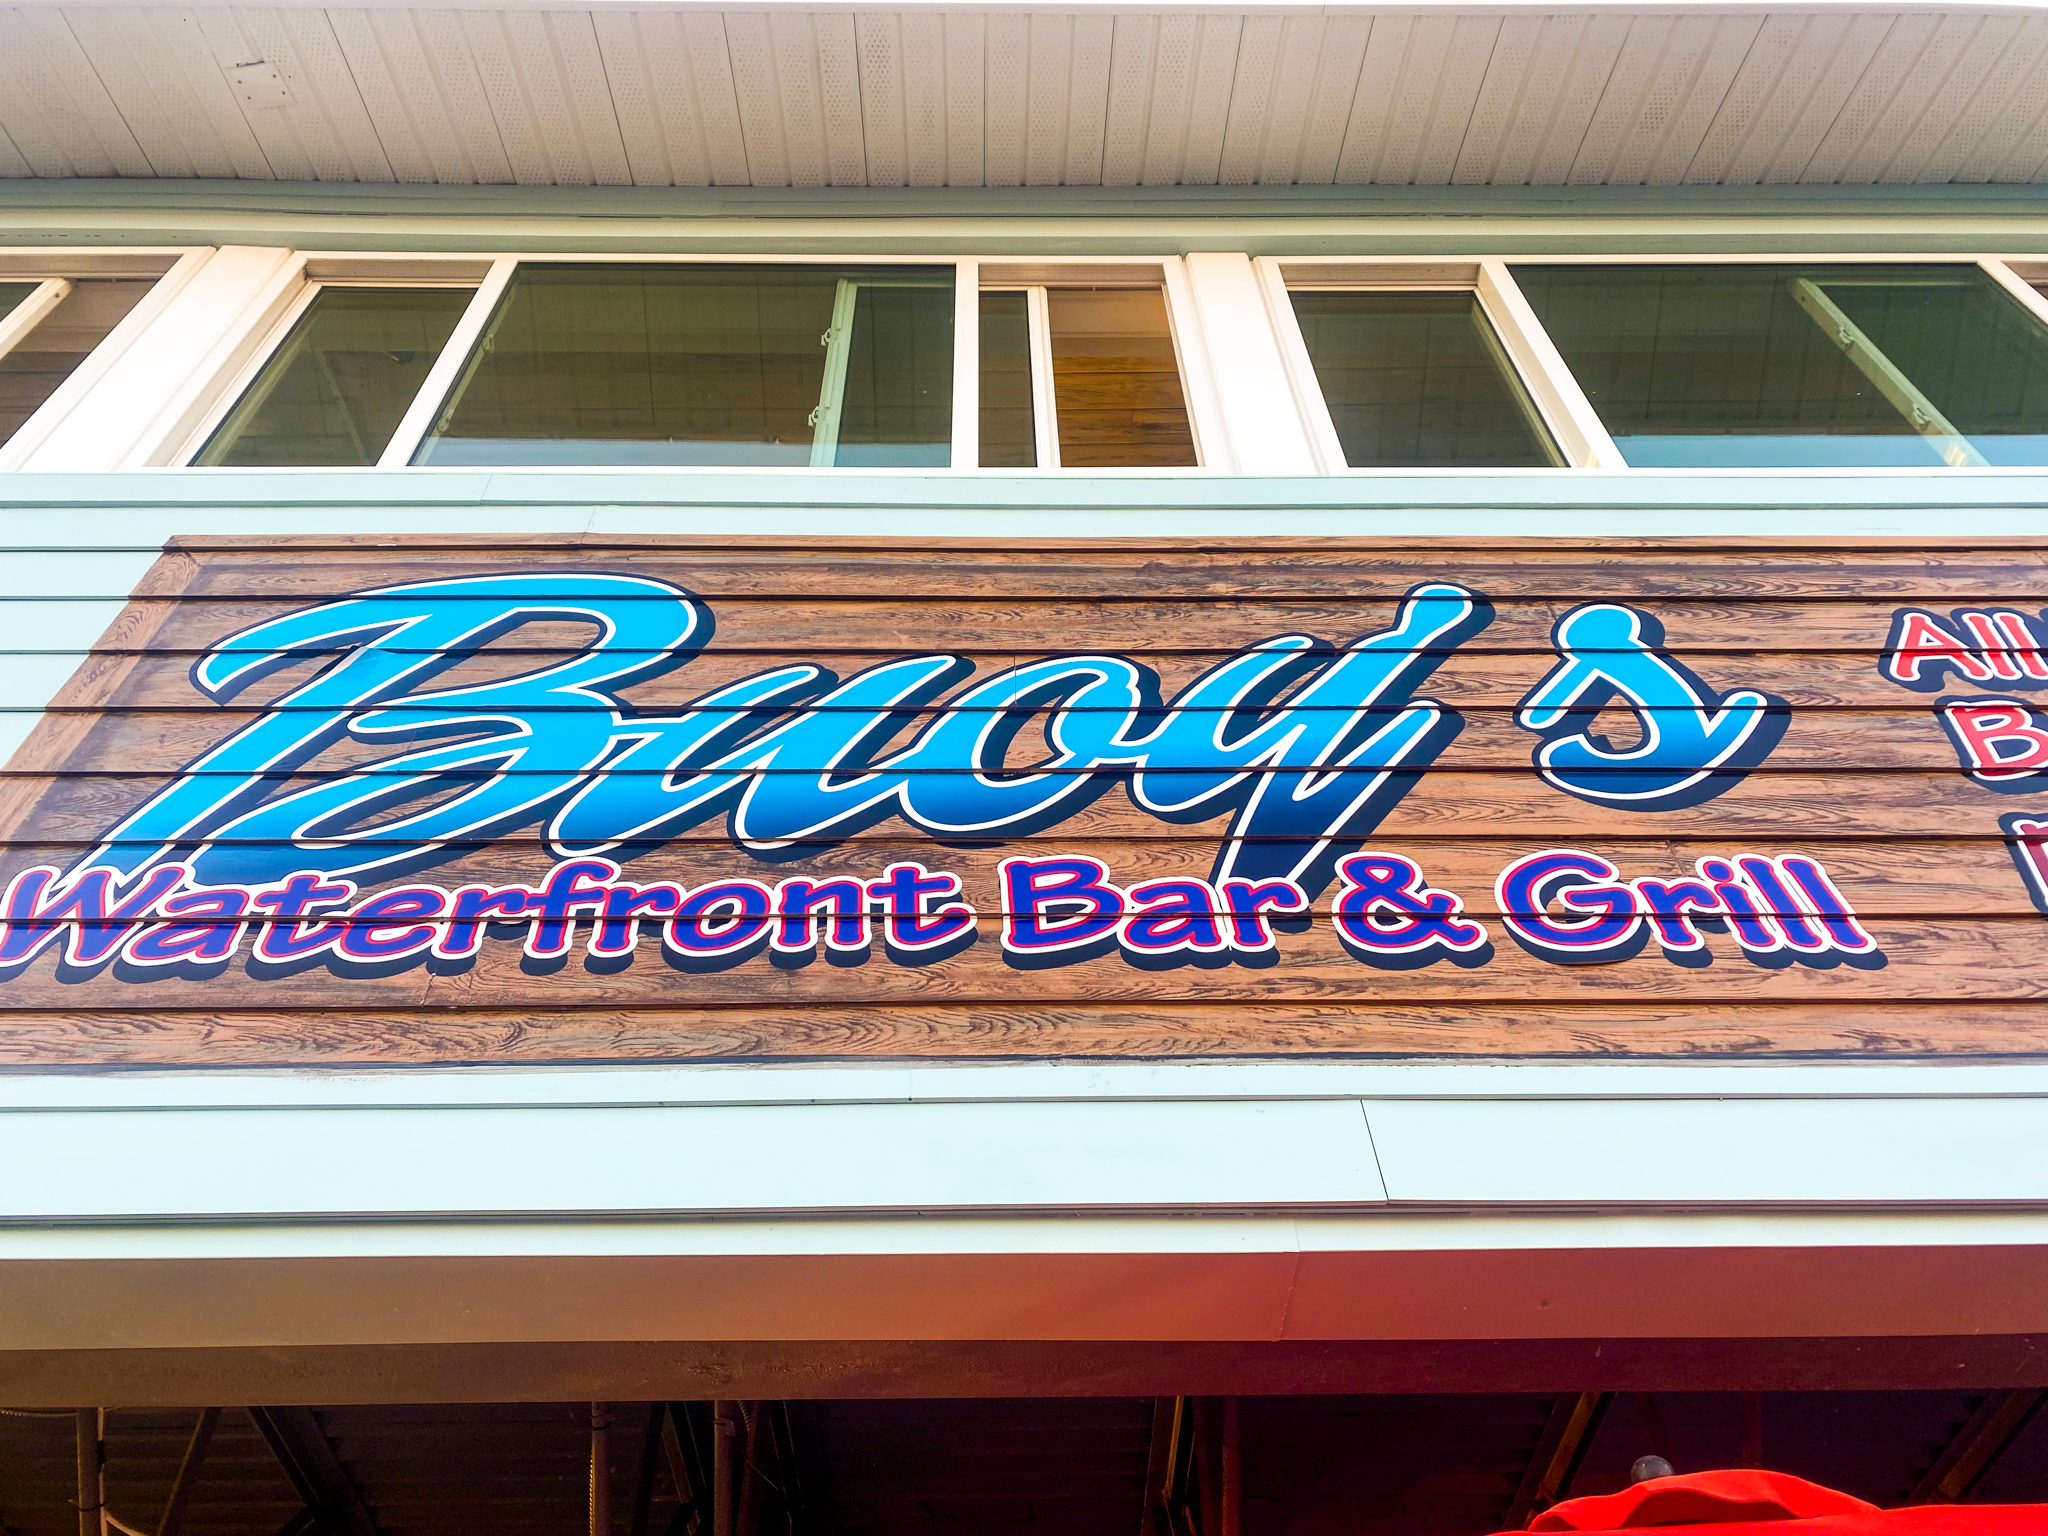 Buoys Waterfront Bar and Grill Sign